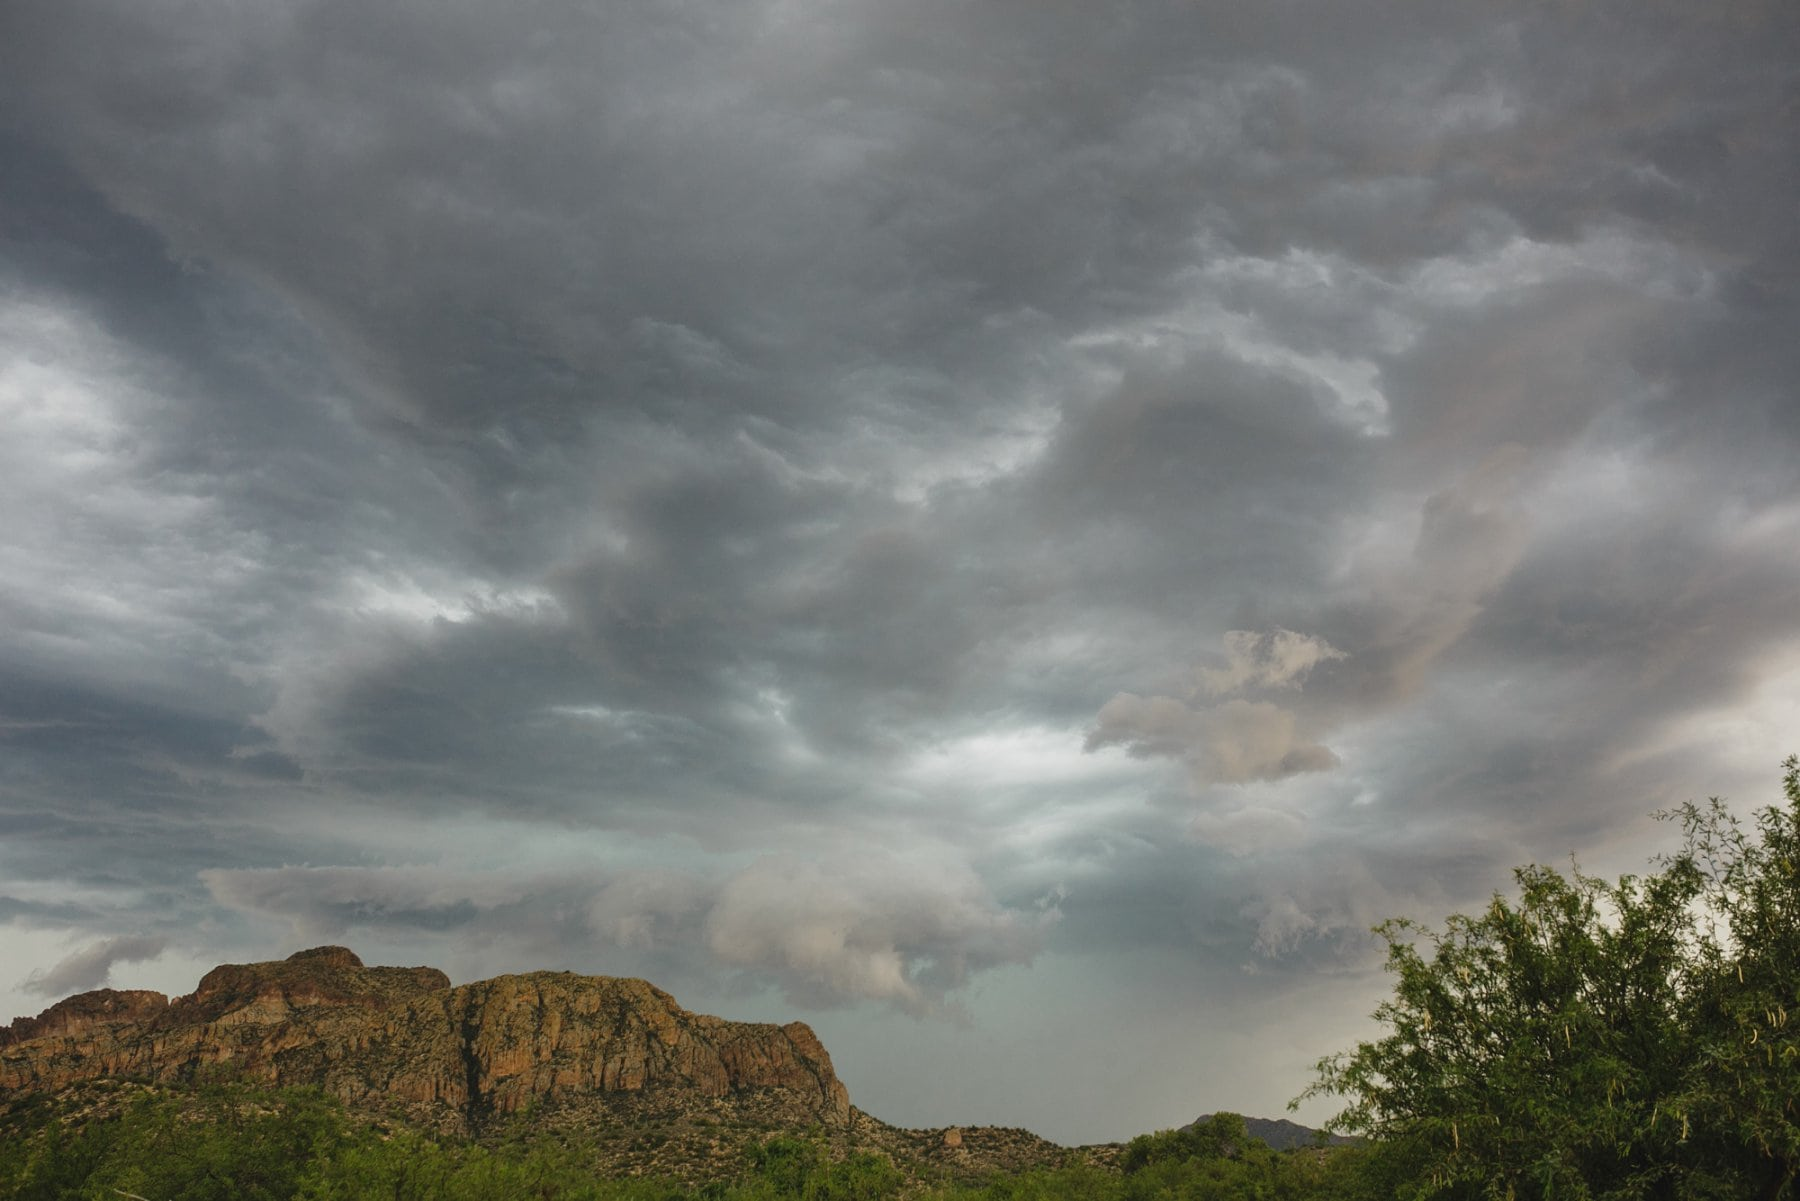 dramatic storm over Salt River mountains